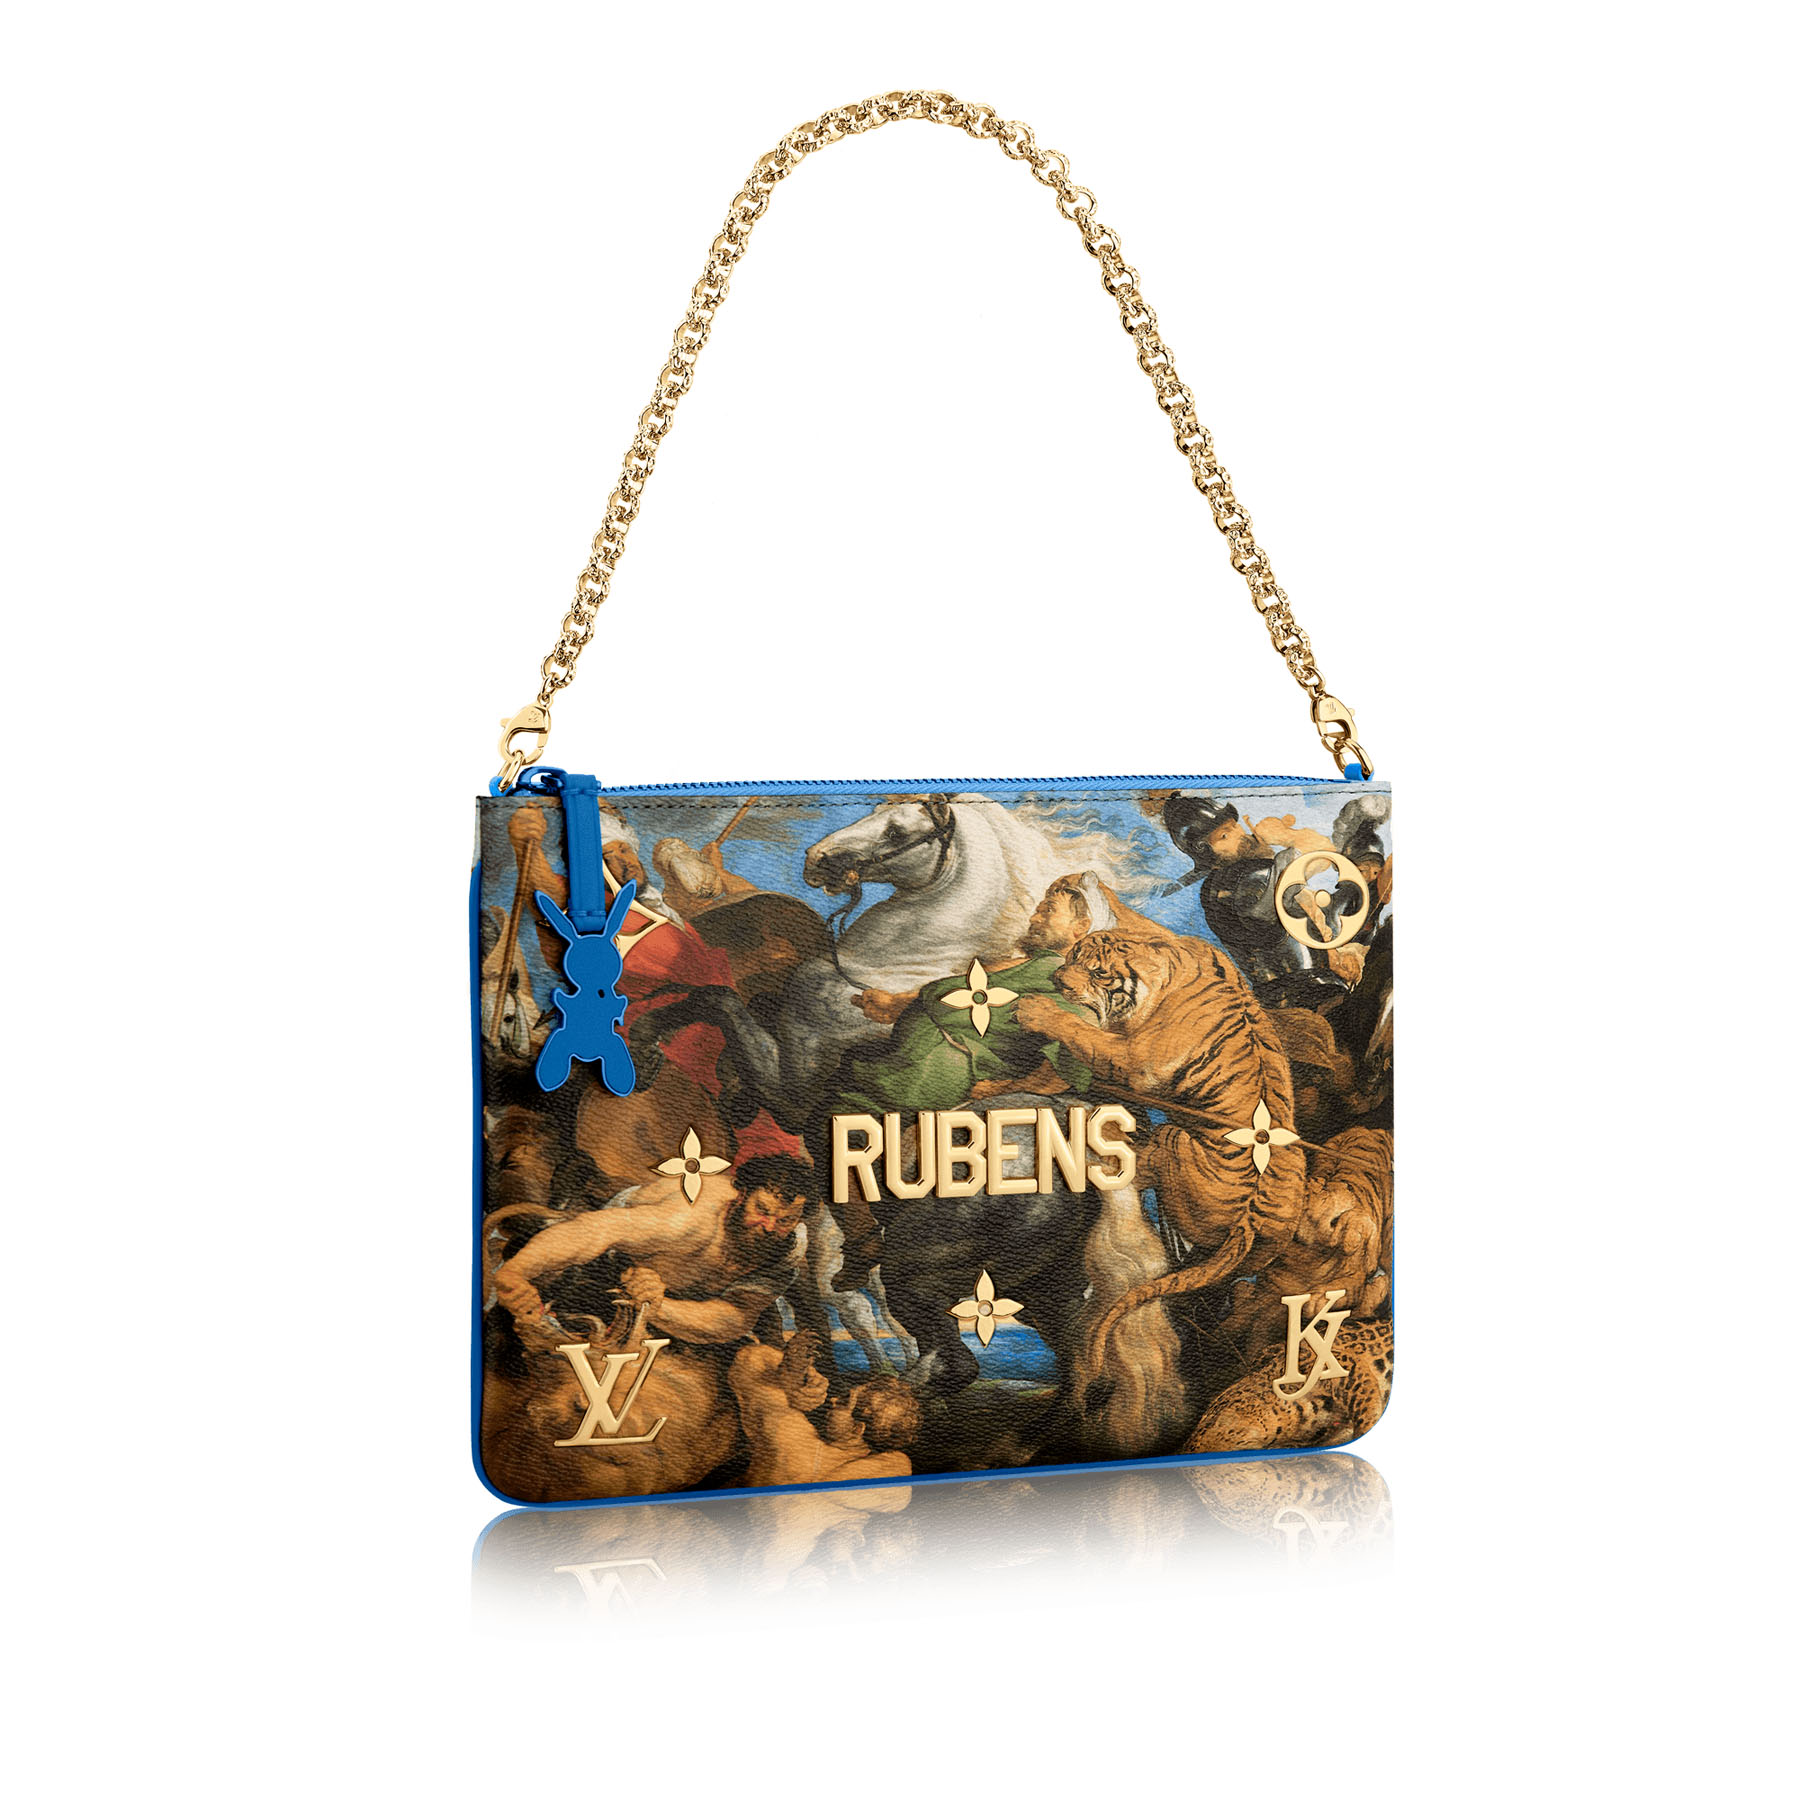 Louis-Vuitton-Jeff-Koons-Collaboration-the-impression-24